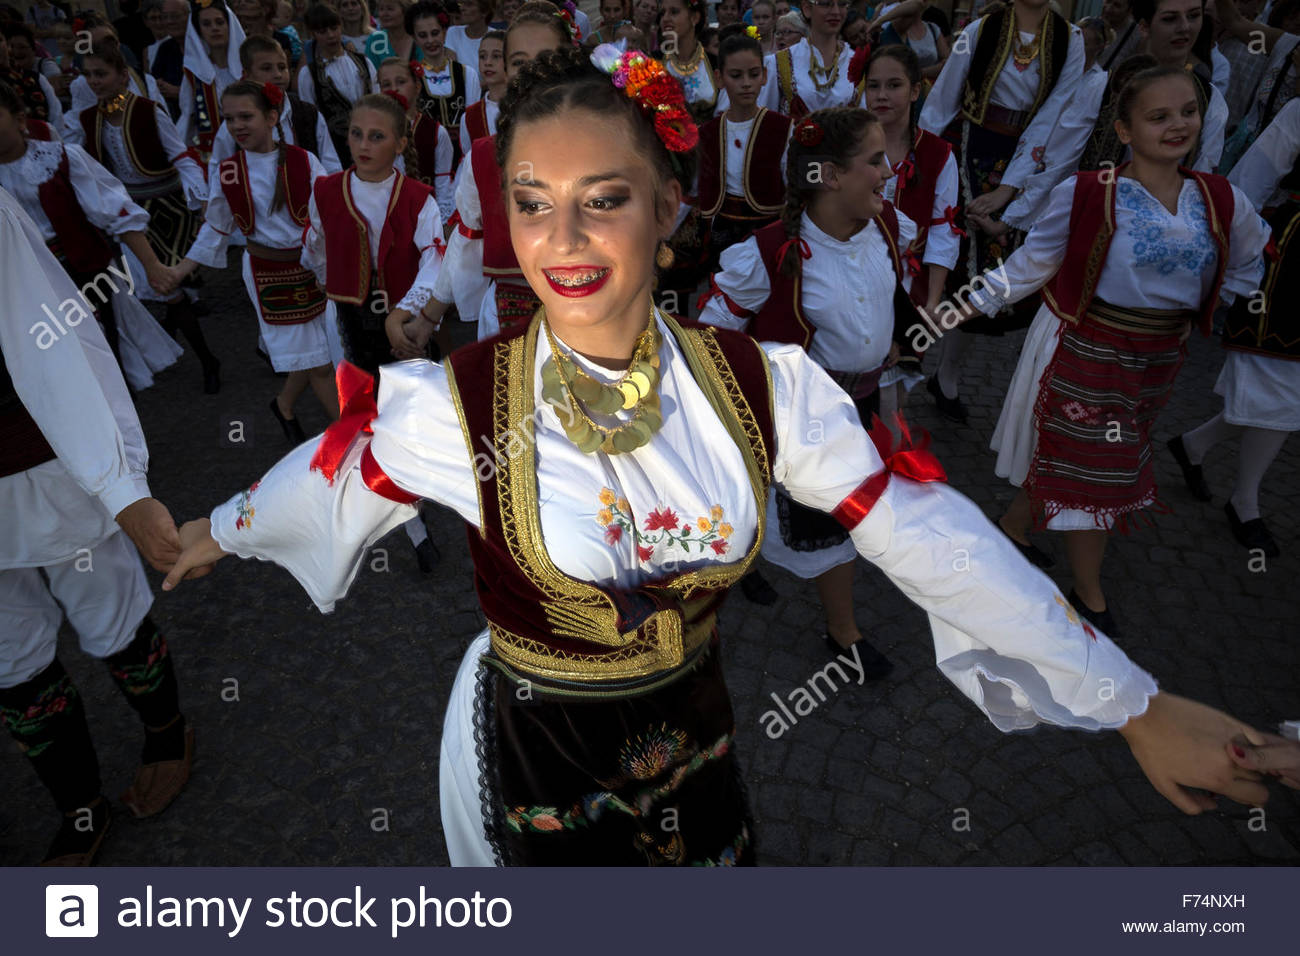 """Serbian girl dressed in national costume dances traditional folklore dance """"Kolo"""". Central square in Sabac, Serbia. Stock Photo"""